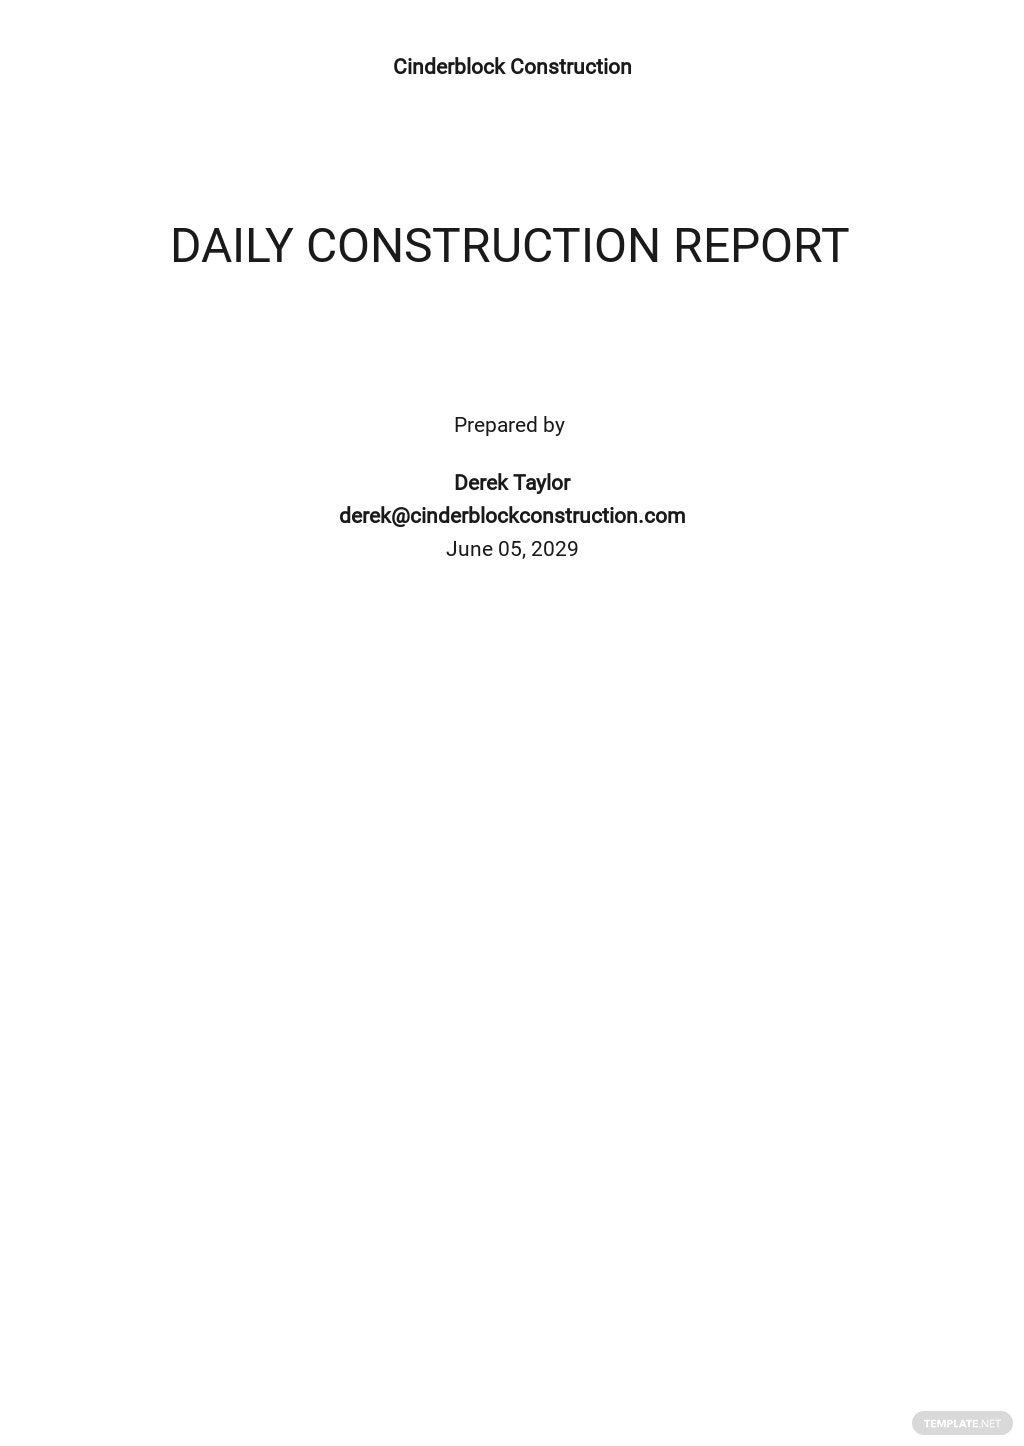 Daily Construction Report Sample Template